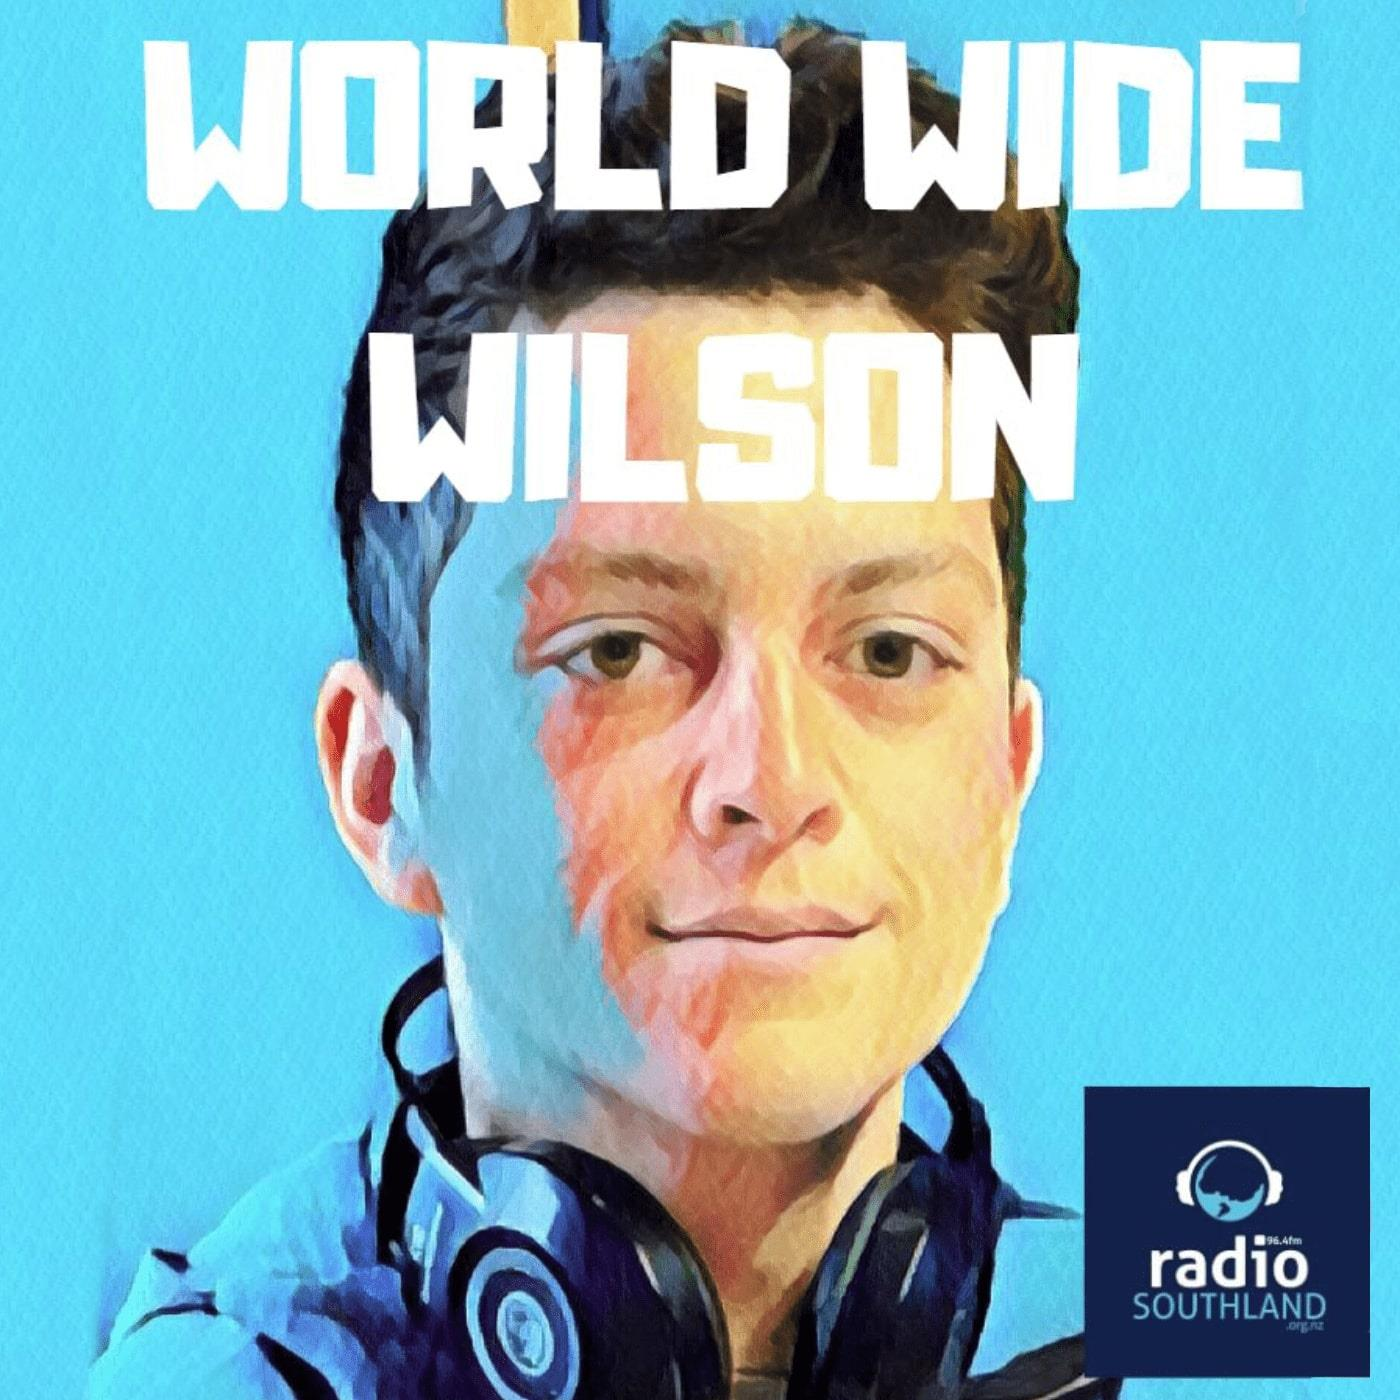 World Wide Wilson - Wilson Ludlow